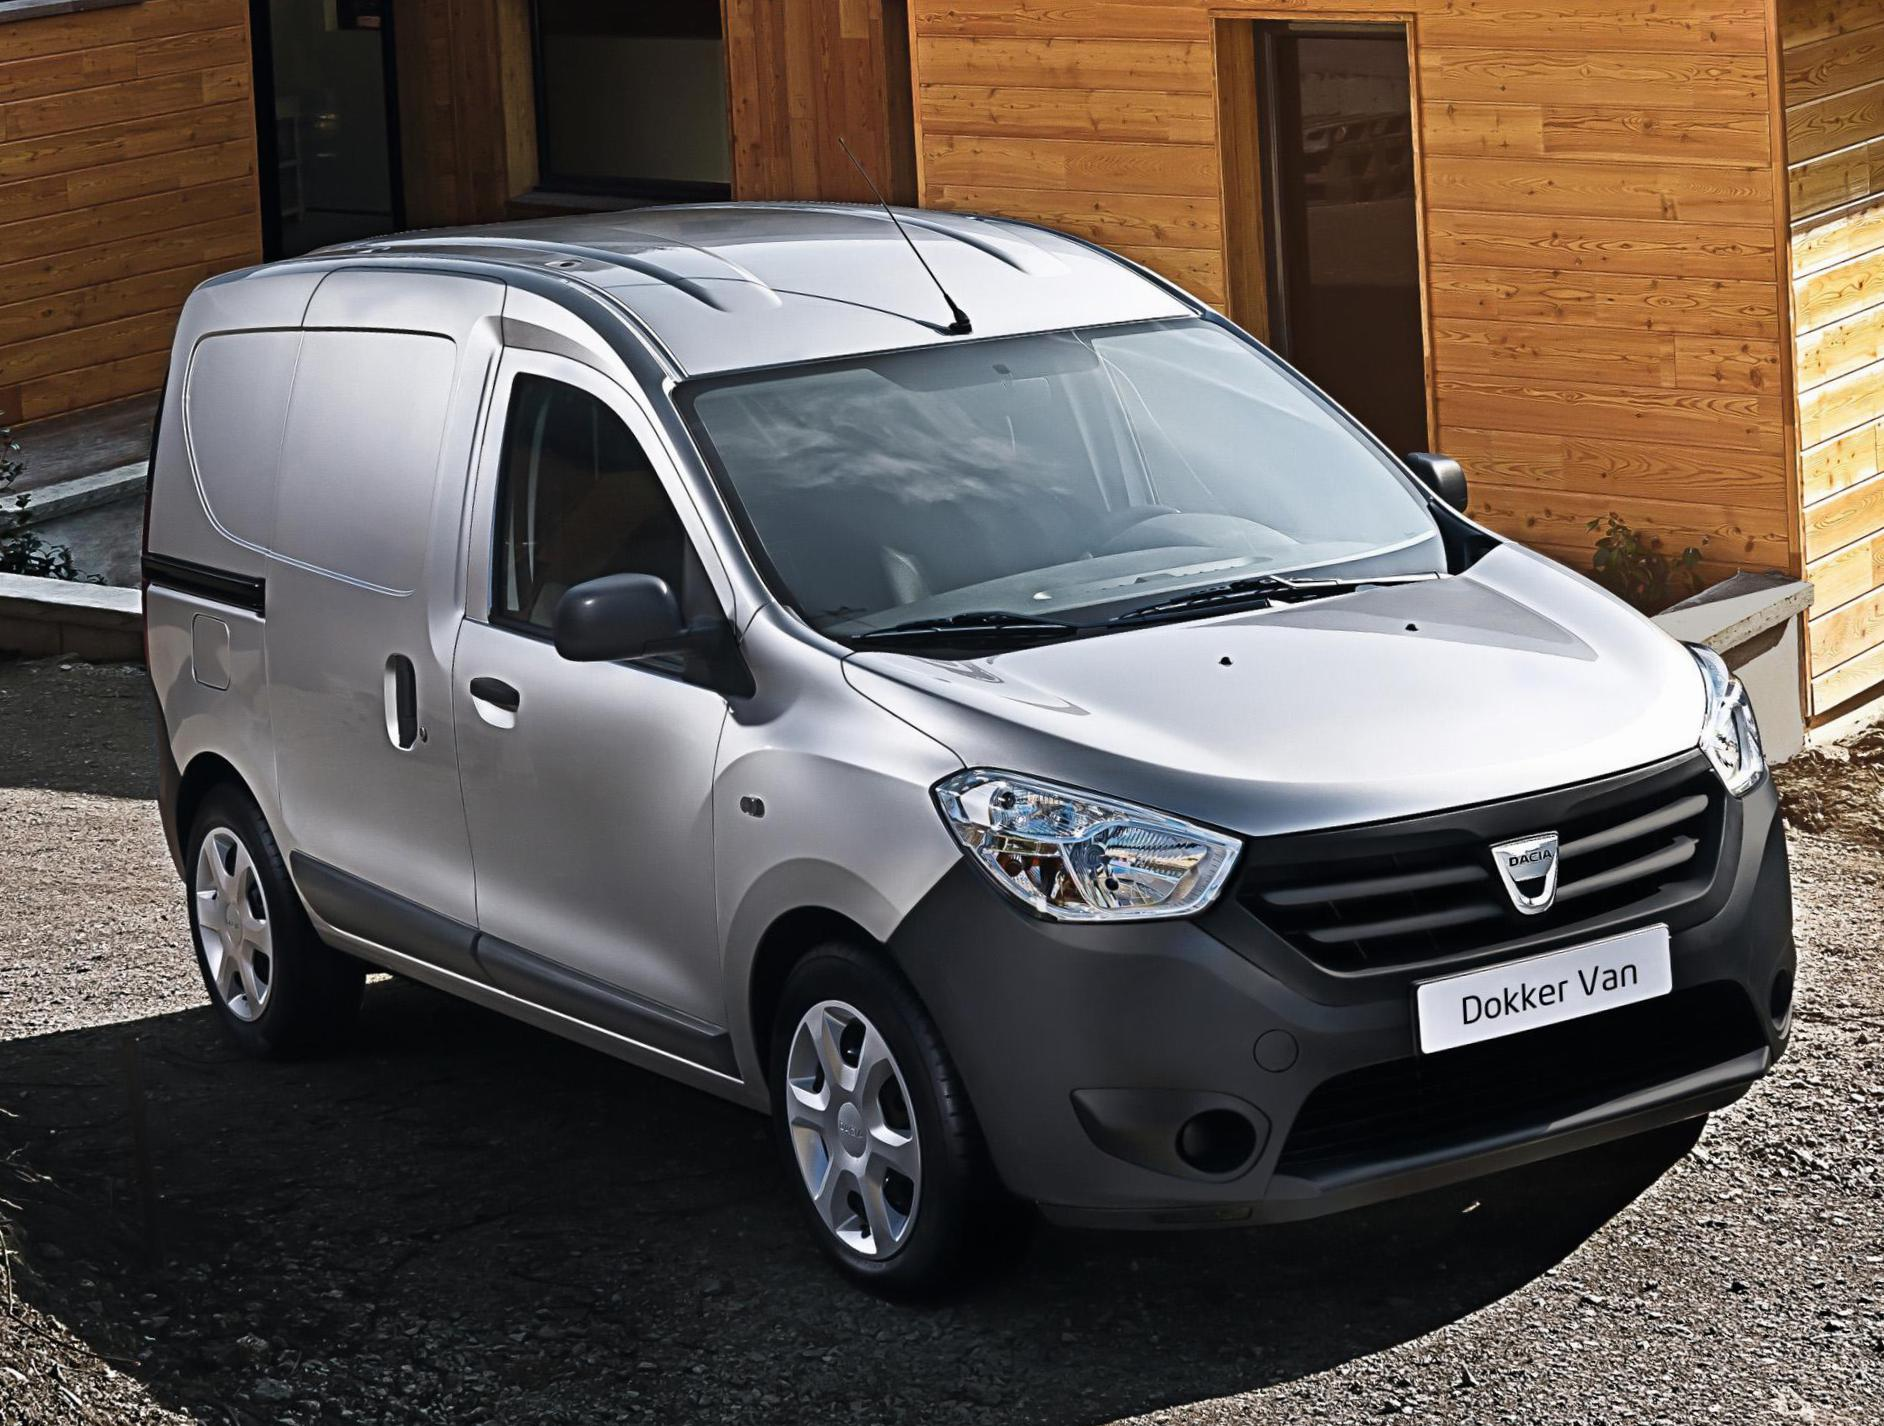 Renault Dokker Van for sale 2014